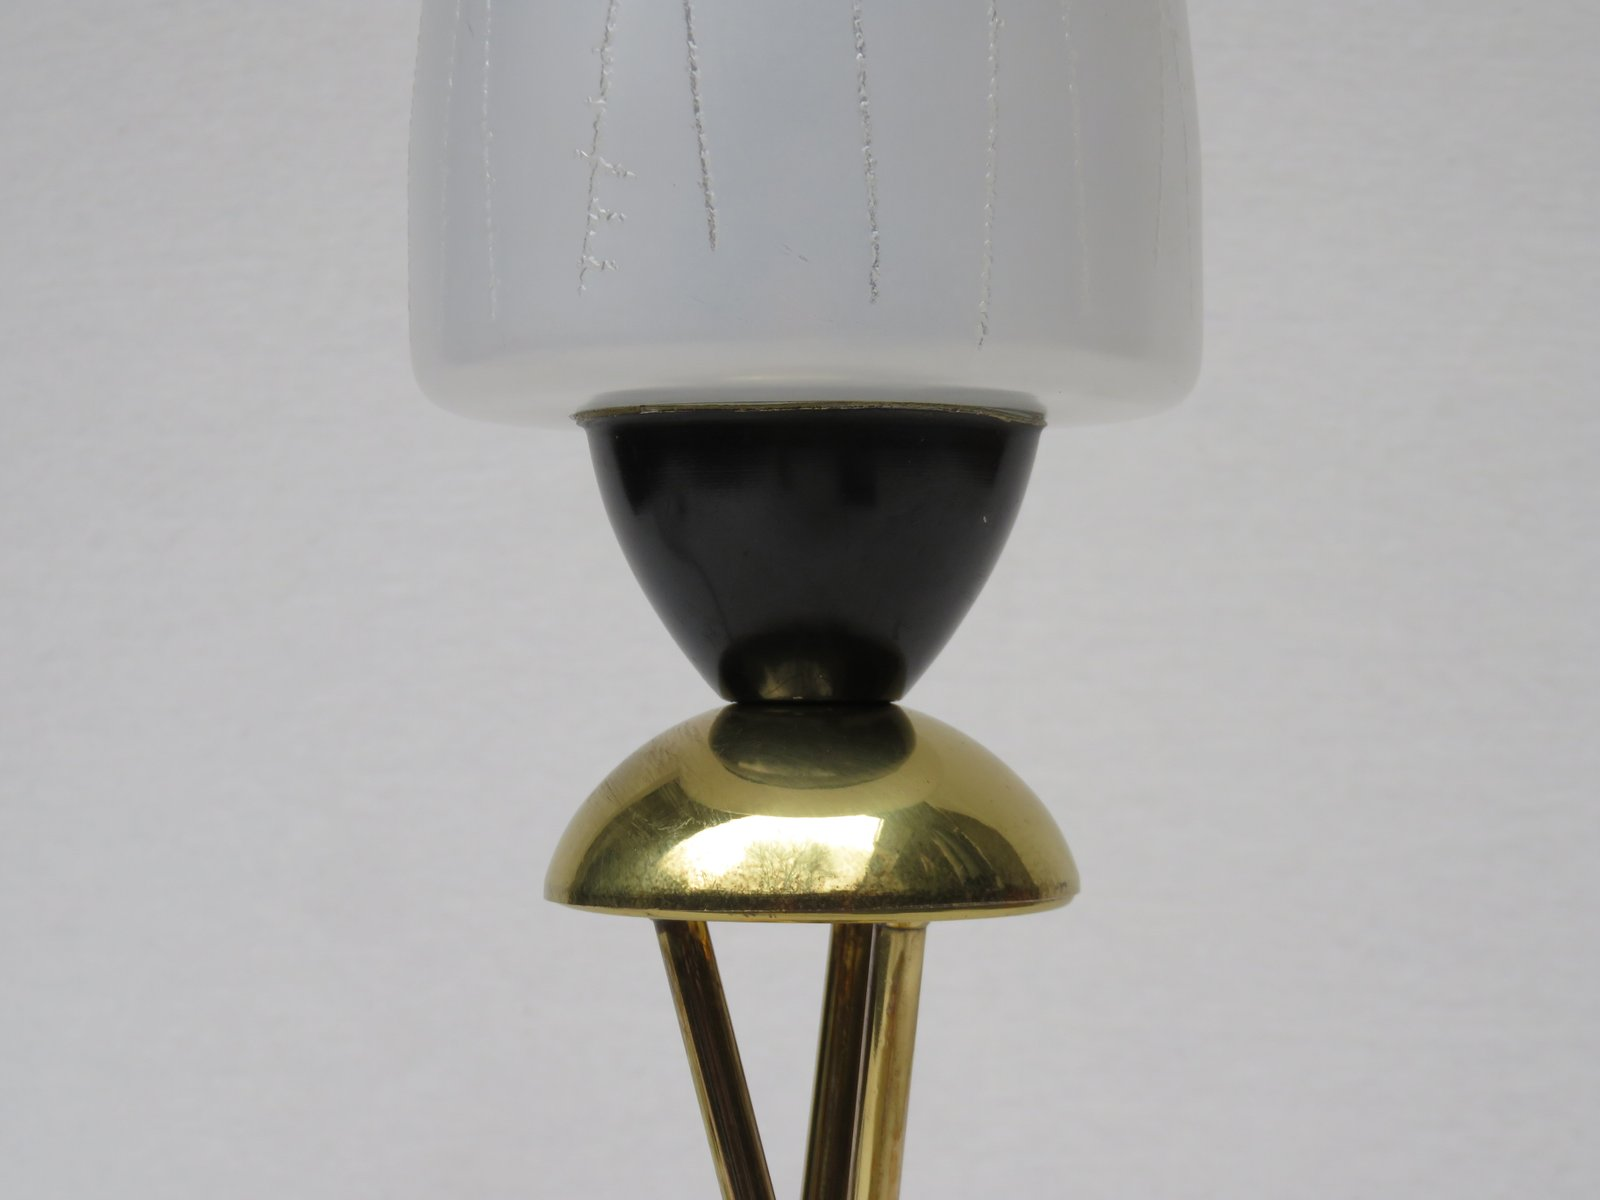 lampe de bureau style space needle italie 1960s en vente sur pamono. Black Bedroom Furniture Sets. Home Design Ideas